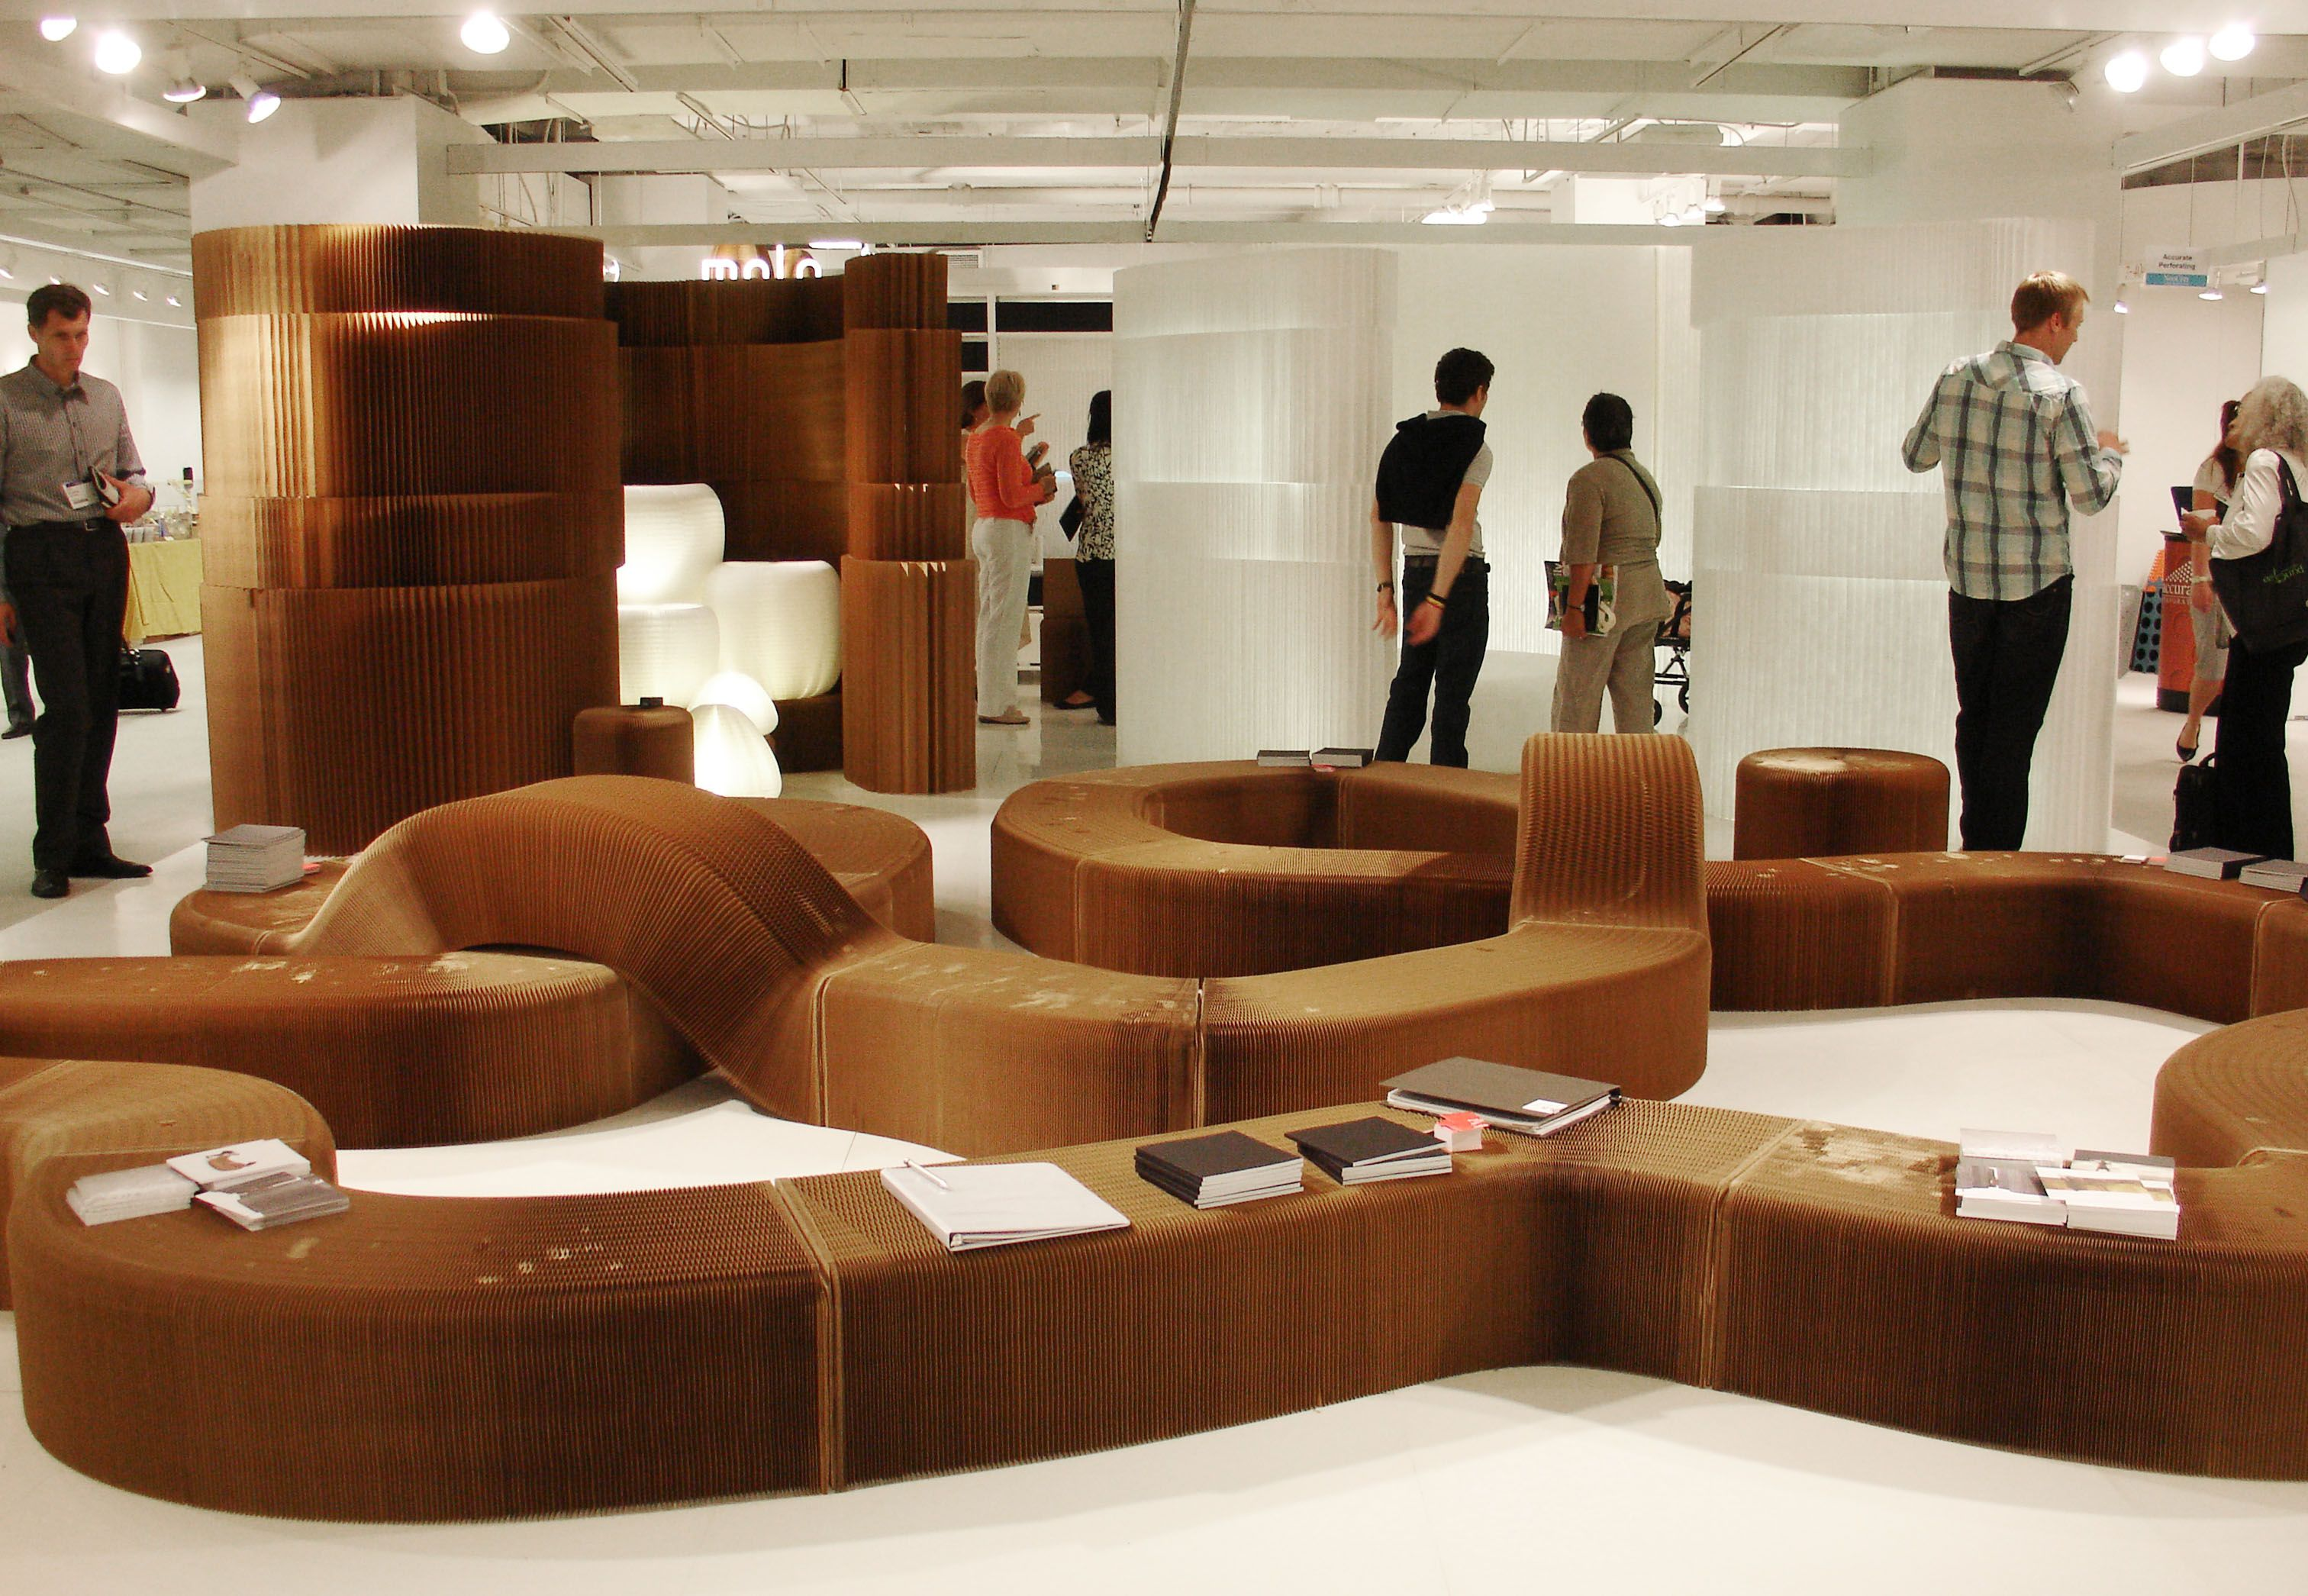 Molo Store Furniture   Expandable Seating And Walls Made Of Cardboard